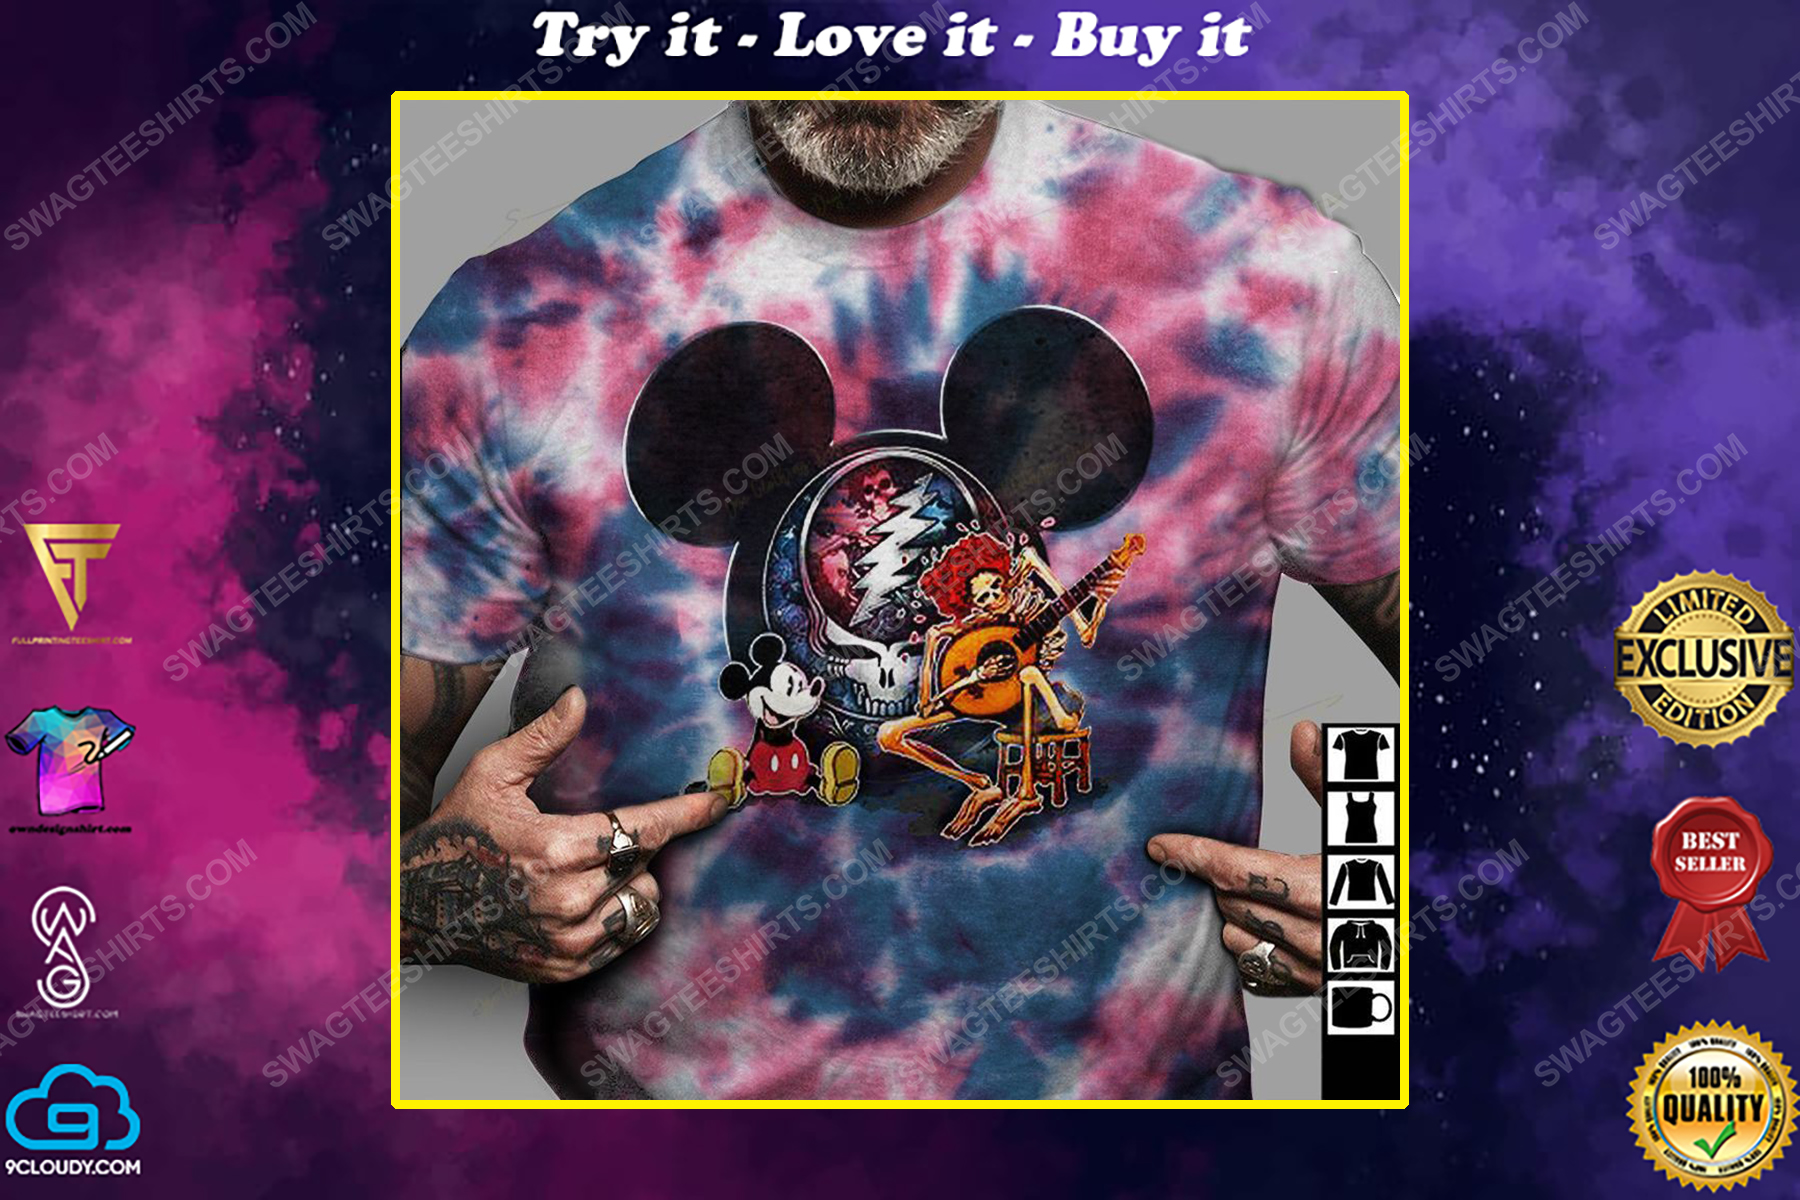 Mickey mouse and grateful dead rock band tie dye hippie shirt